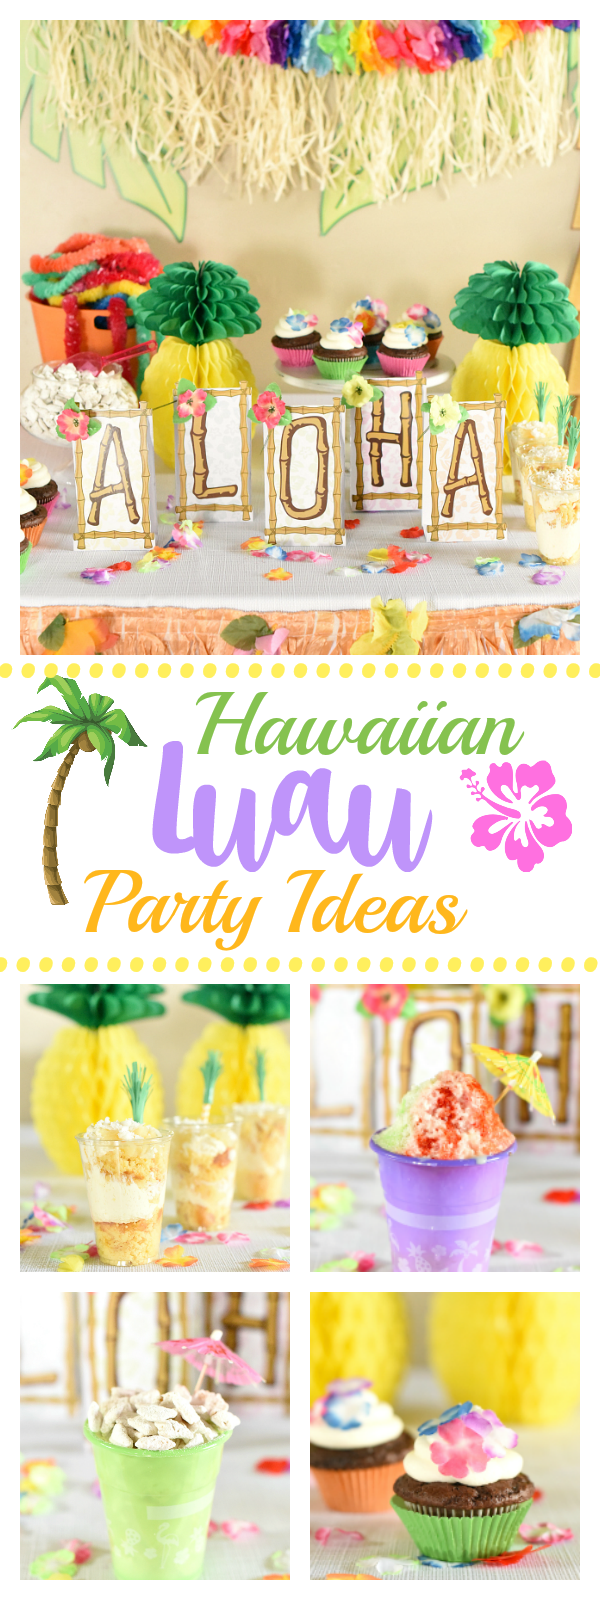 Hawaiian Luau Party Ideas-Great ideas to throw the funnest Hawaiian themed party from food to decorations, game and fun! #luau #hawaiianthemedparty #hawaiianparty